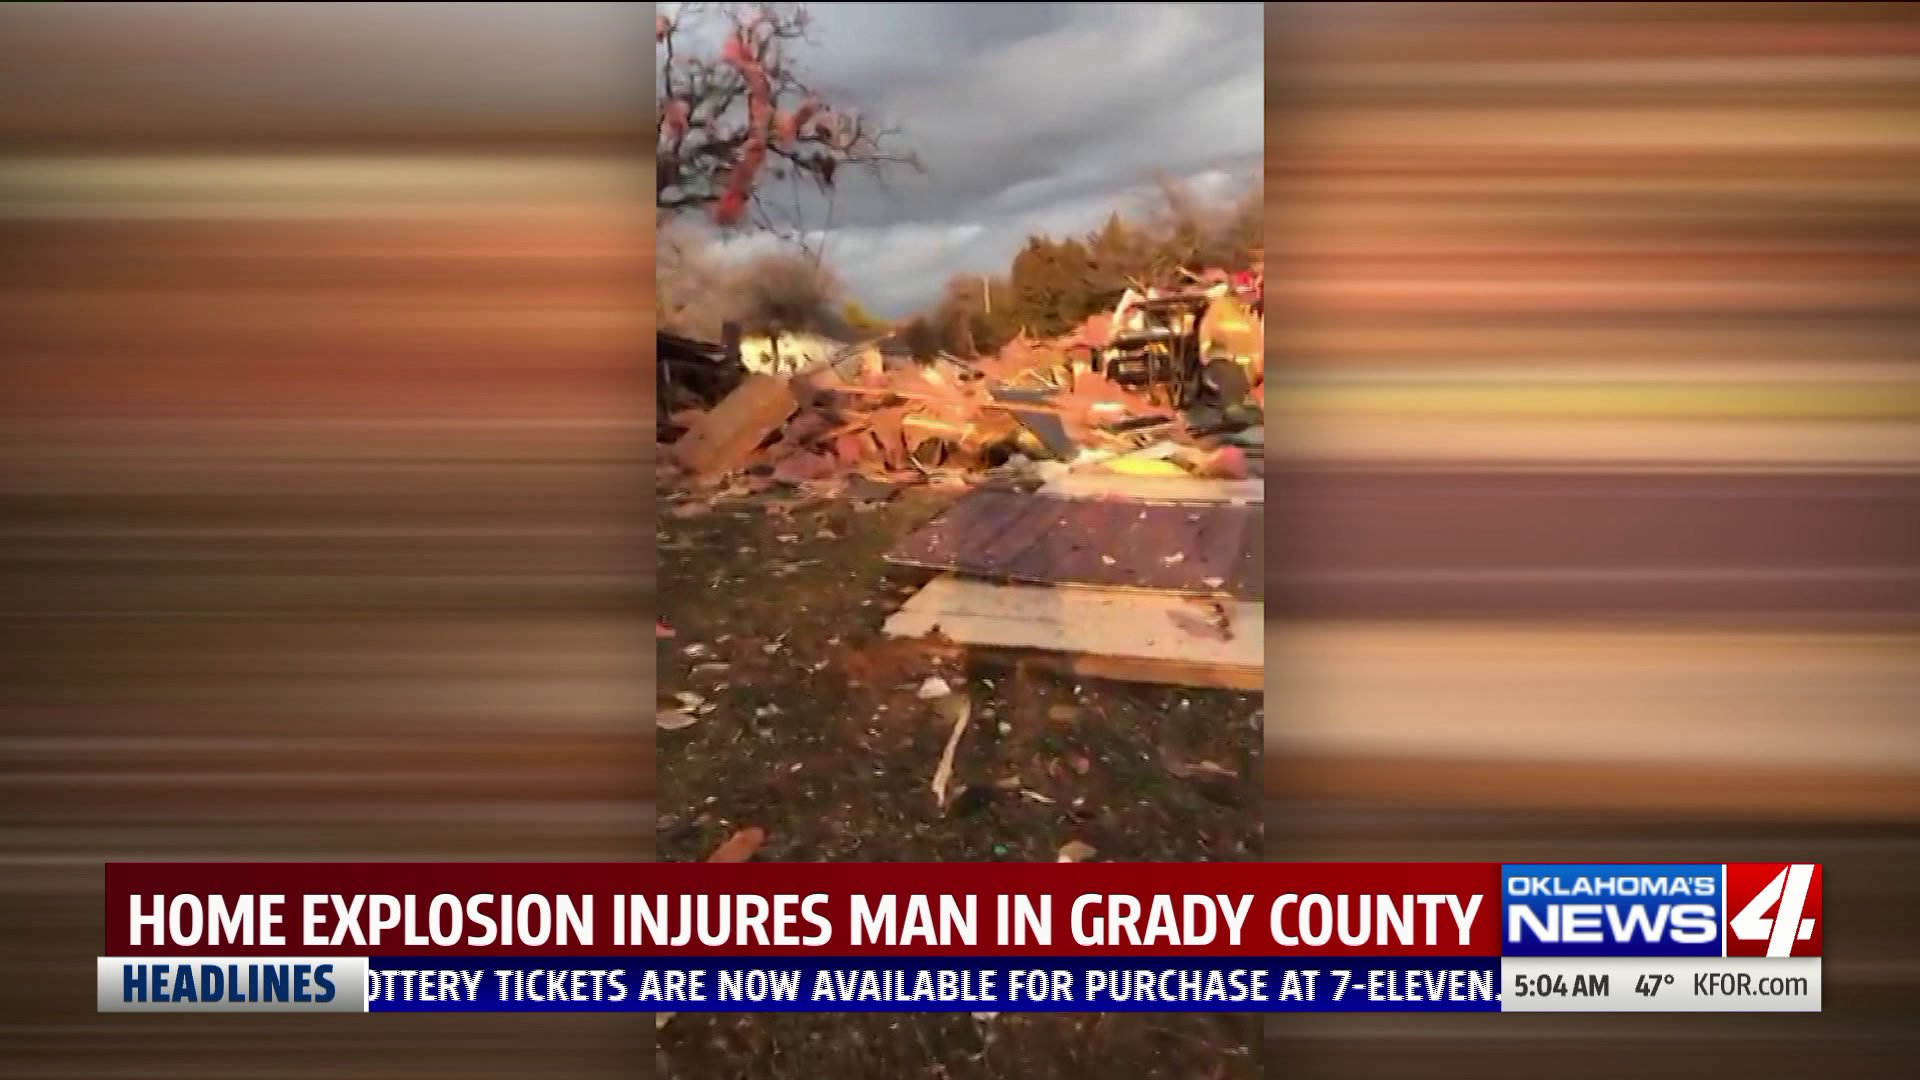 House explosion in Grady County